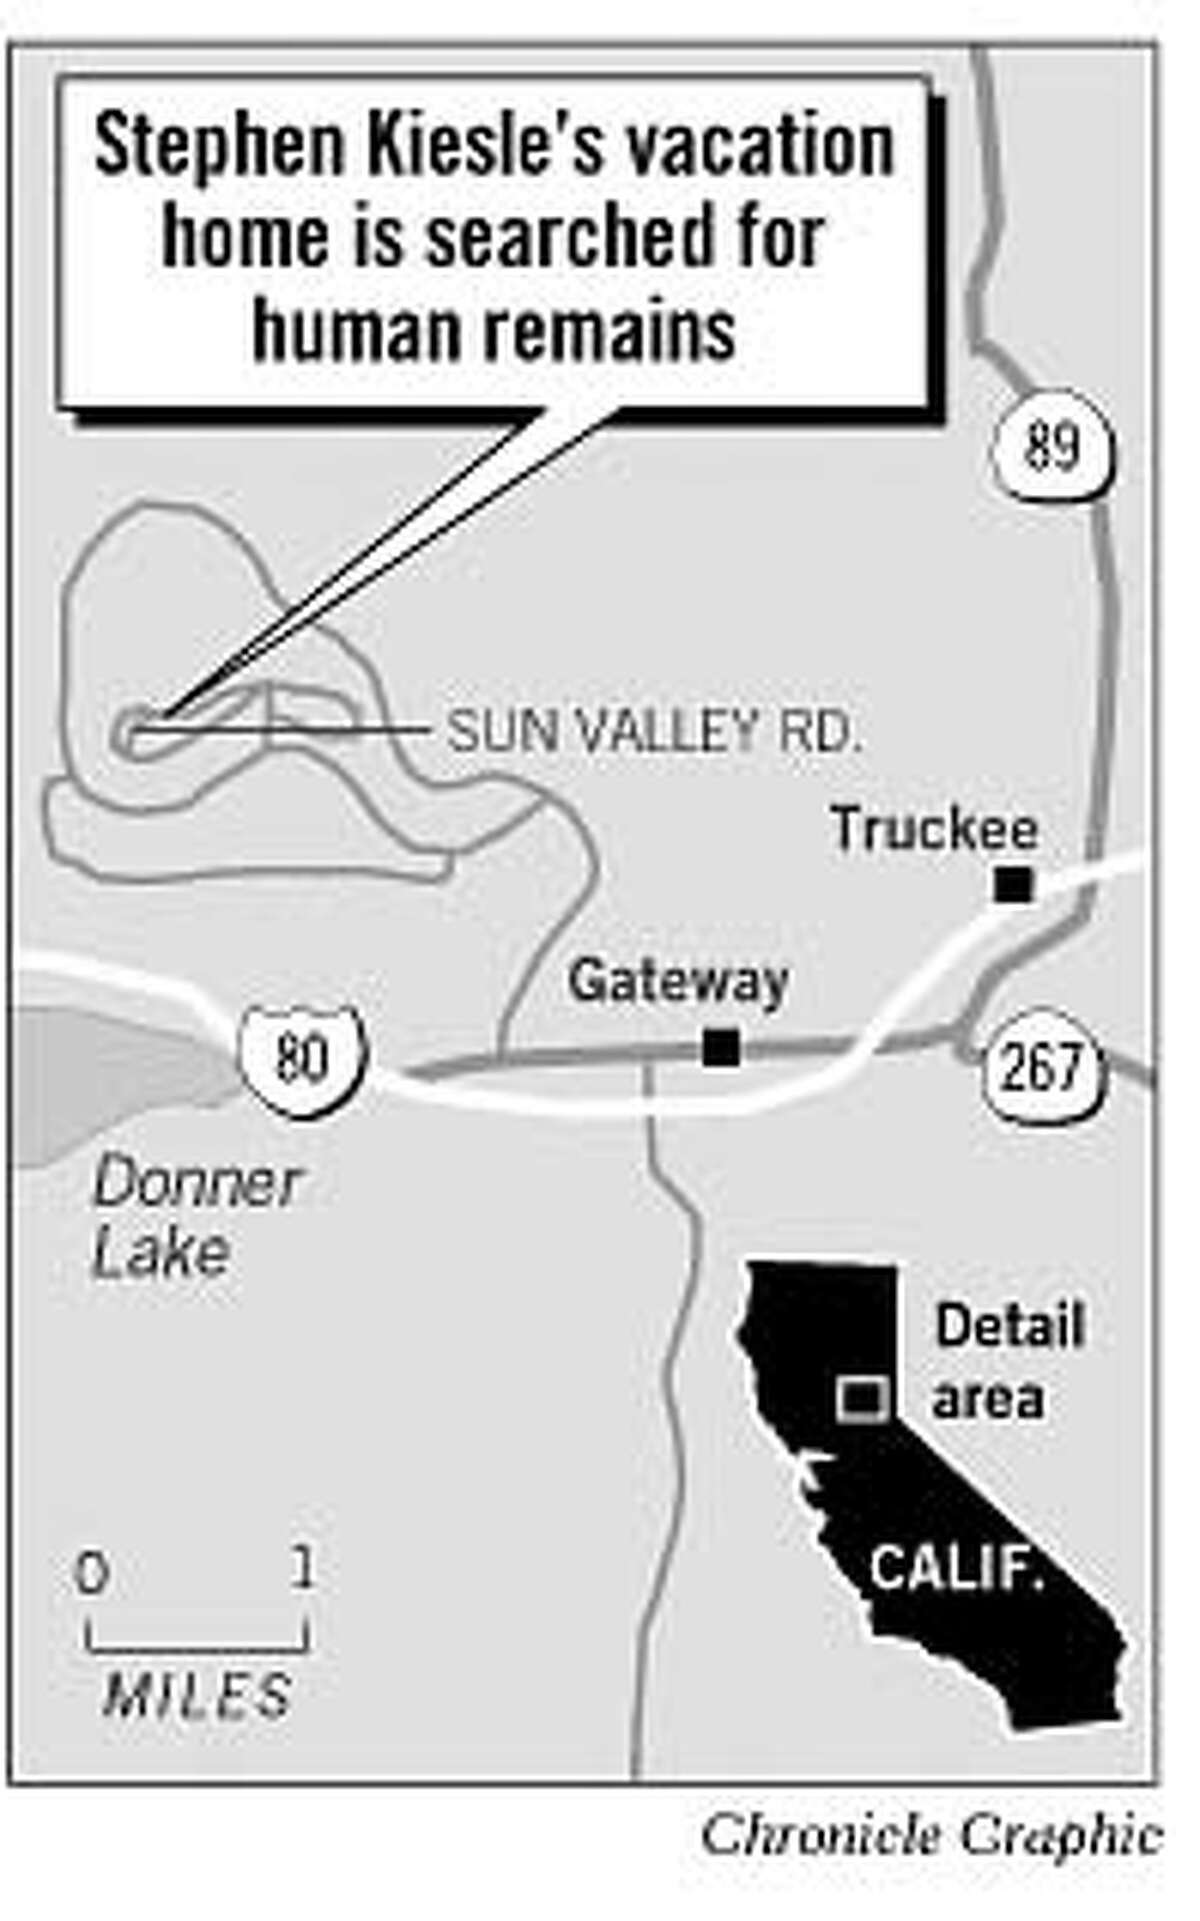 Stephen Kiesle's vacation home is searched for human remains. Chronicle Graphic